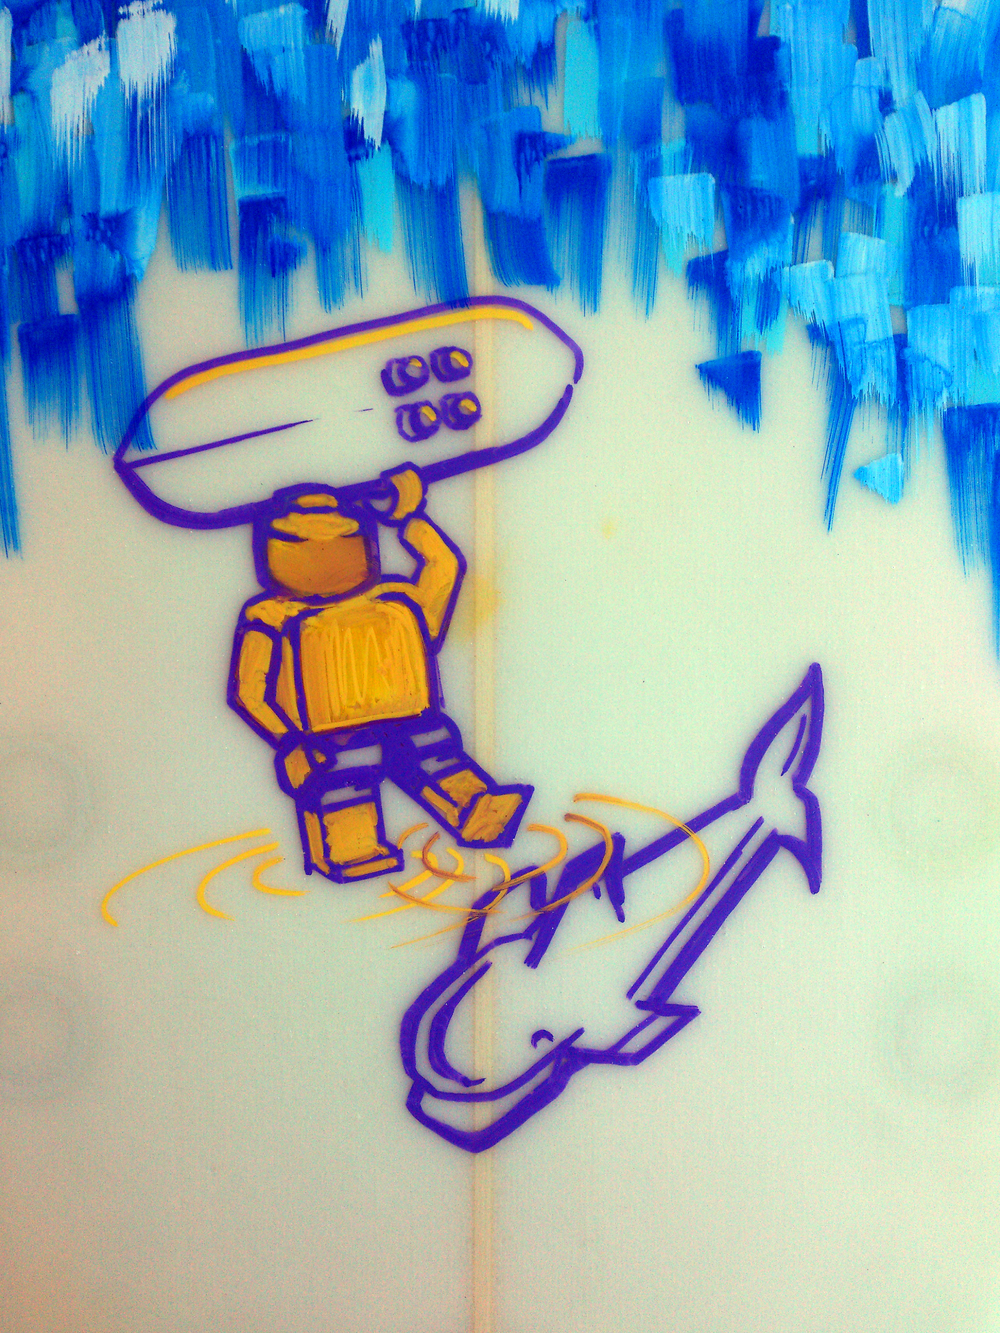 lego-surfboard-illustration-samshennan-sam-shennan-ud3-posca-handmade-handpainted-yellow-purple.jpg